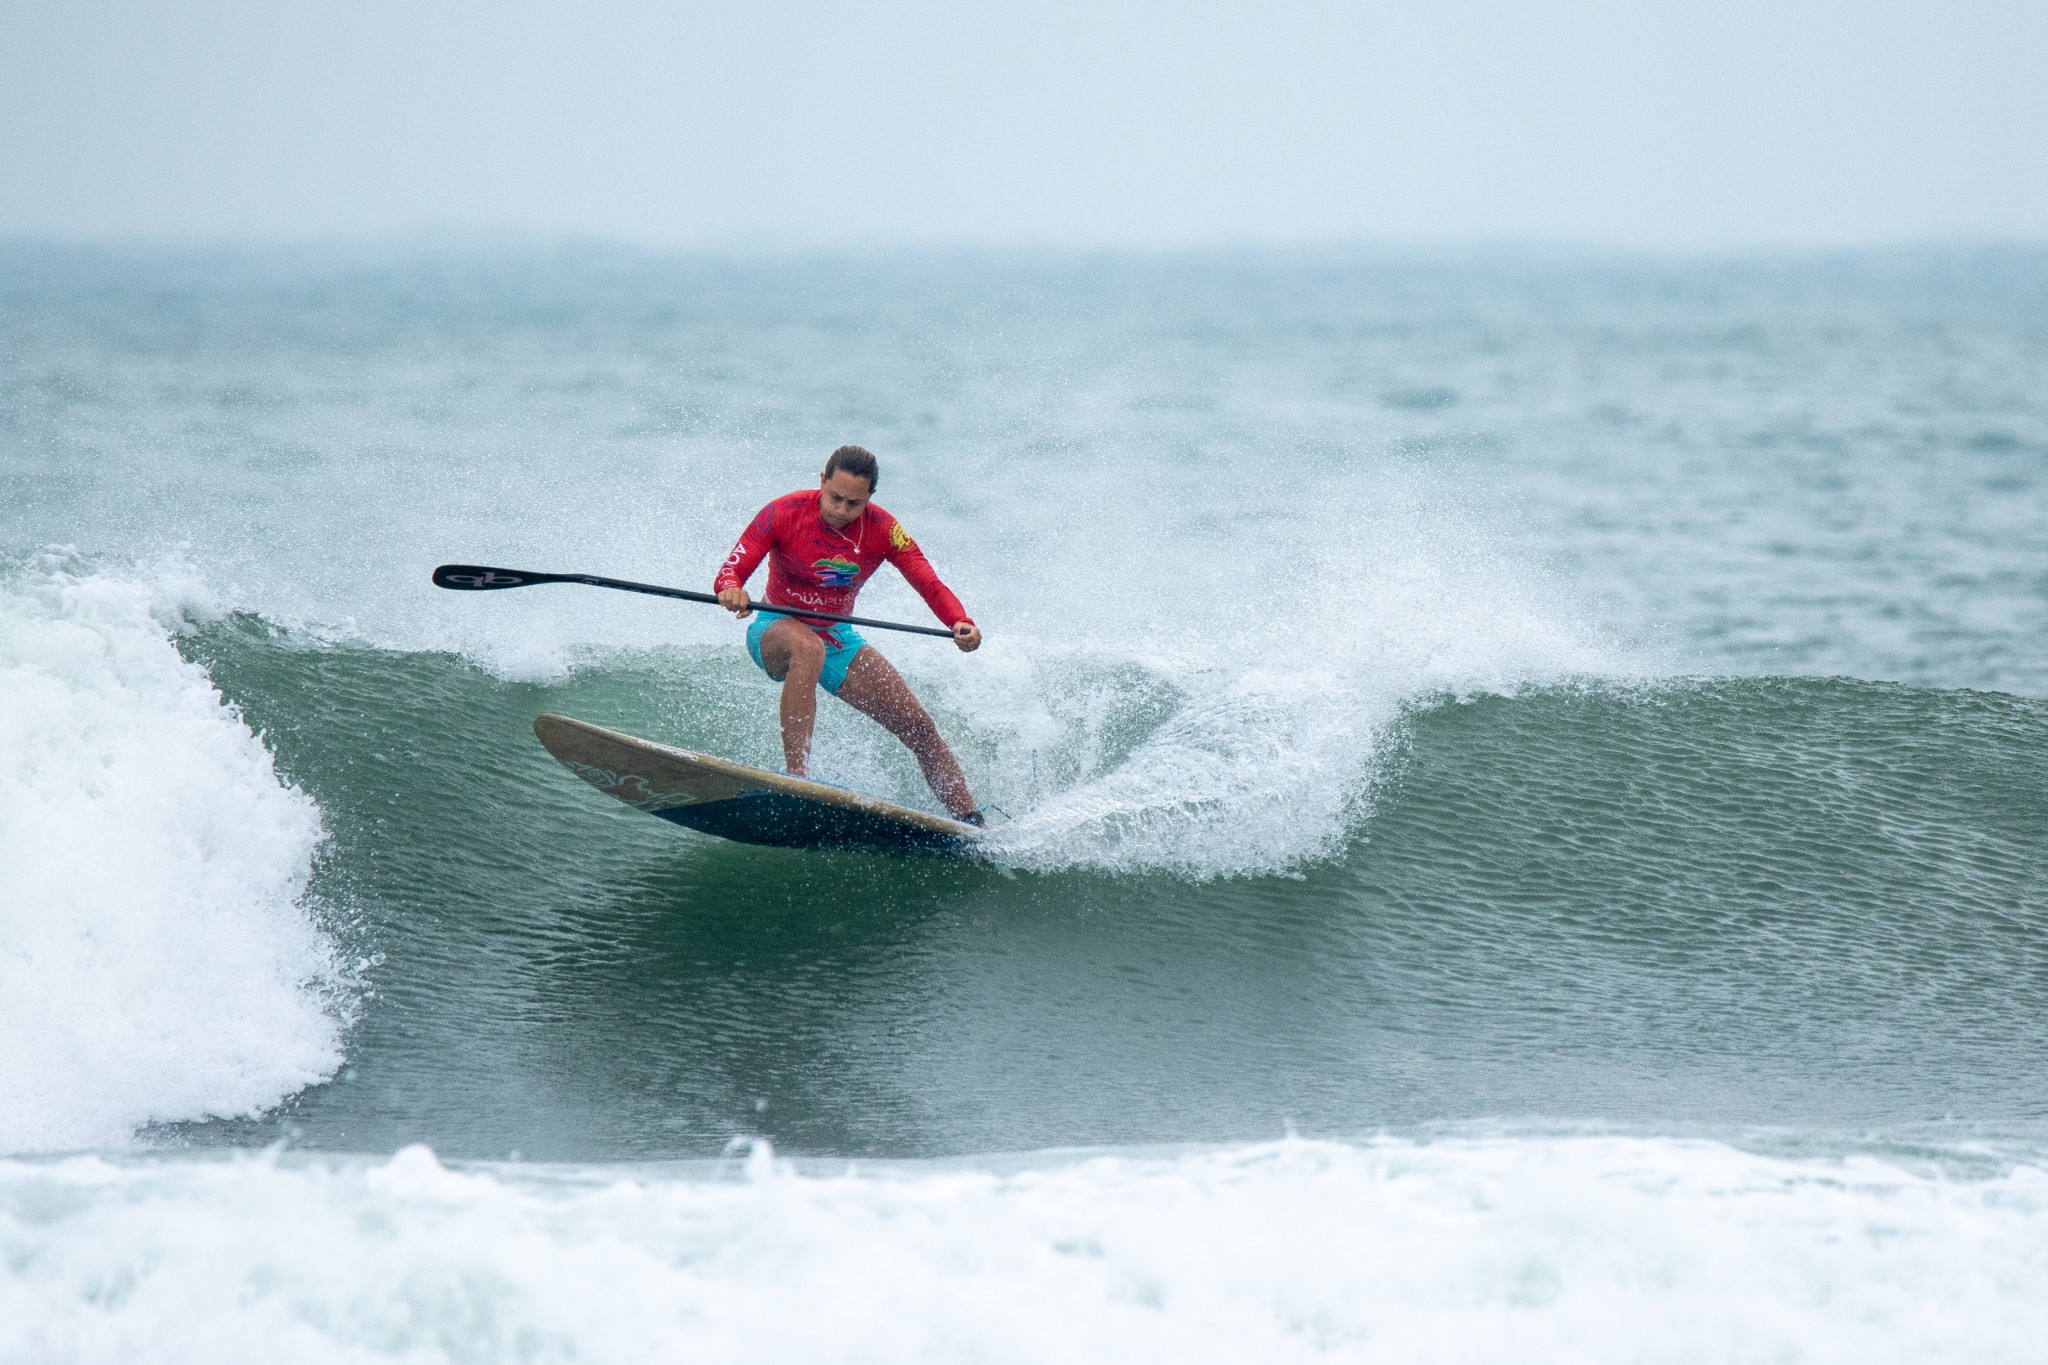 Australia's reigning women's world champion Shakira Westrop will have to continue to impress in the repechage rounds if she wants to retain her title ©ISA